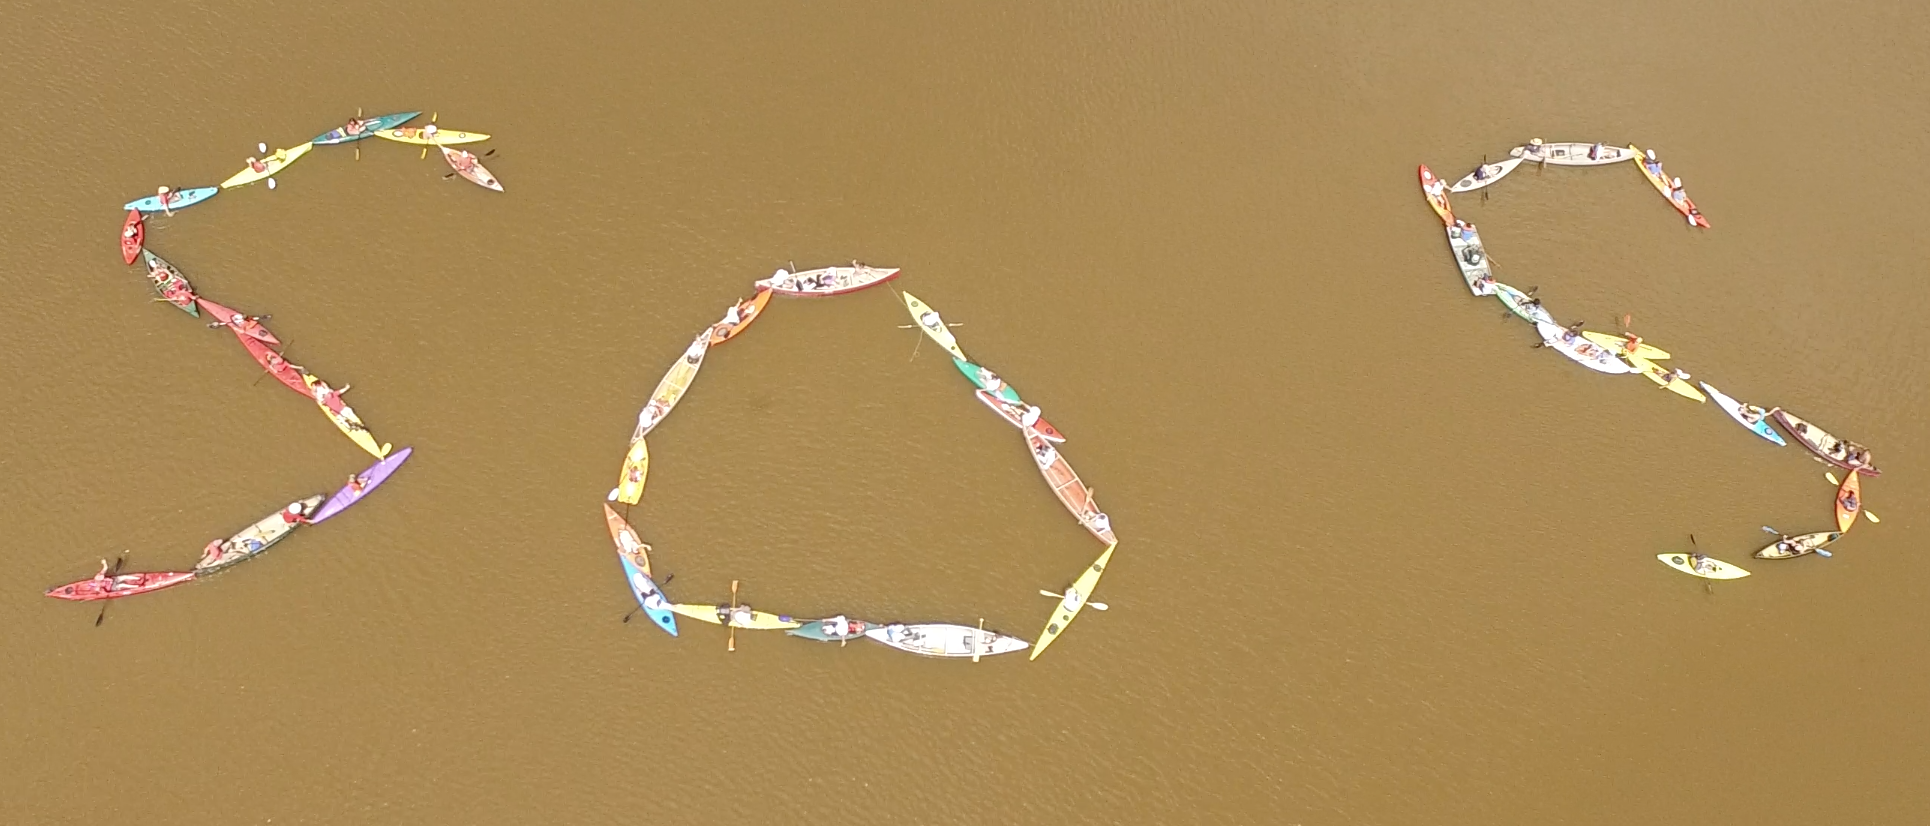 """Sunday, July 29th, 2018 Drone footage by Cody Buesing / ReThink Films  Keith Buesing  conceptualized and organized a live community art exhibition with kayaks and canoes. Together they spelled """"SOS"""" - """"Save Our Sanctuary"""" in an effort to save Tillson Lake."""